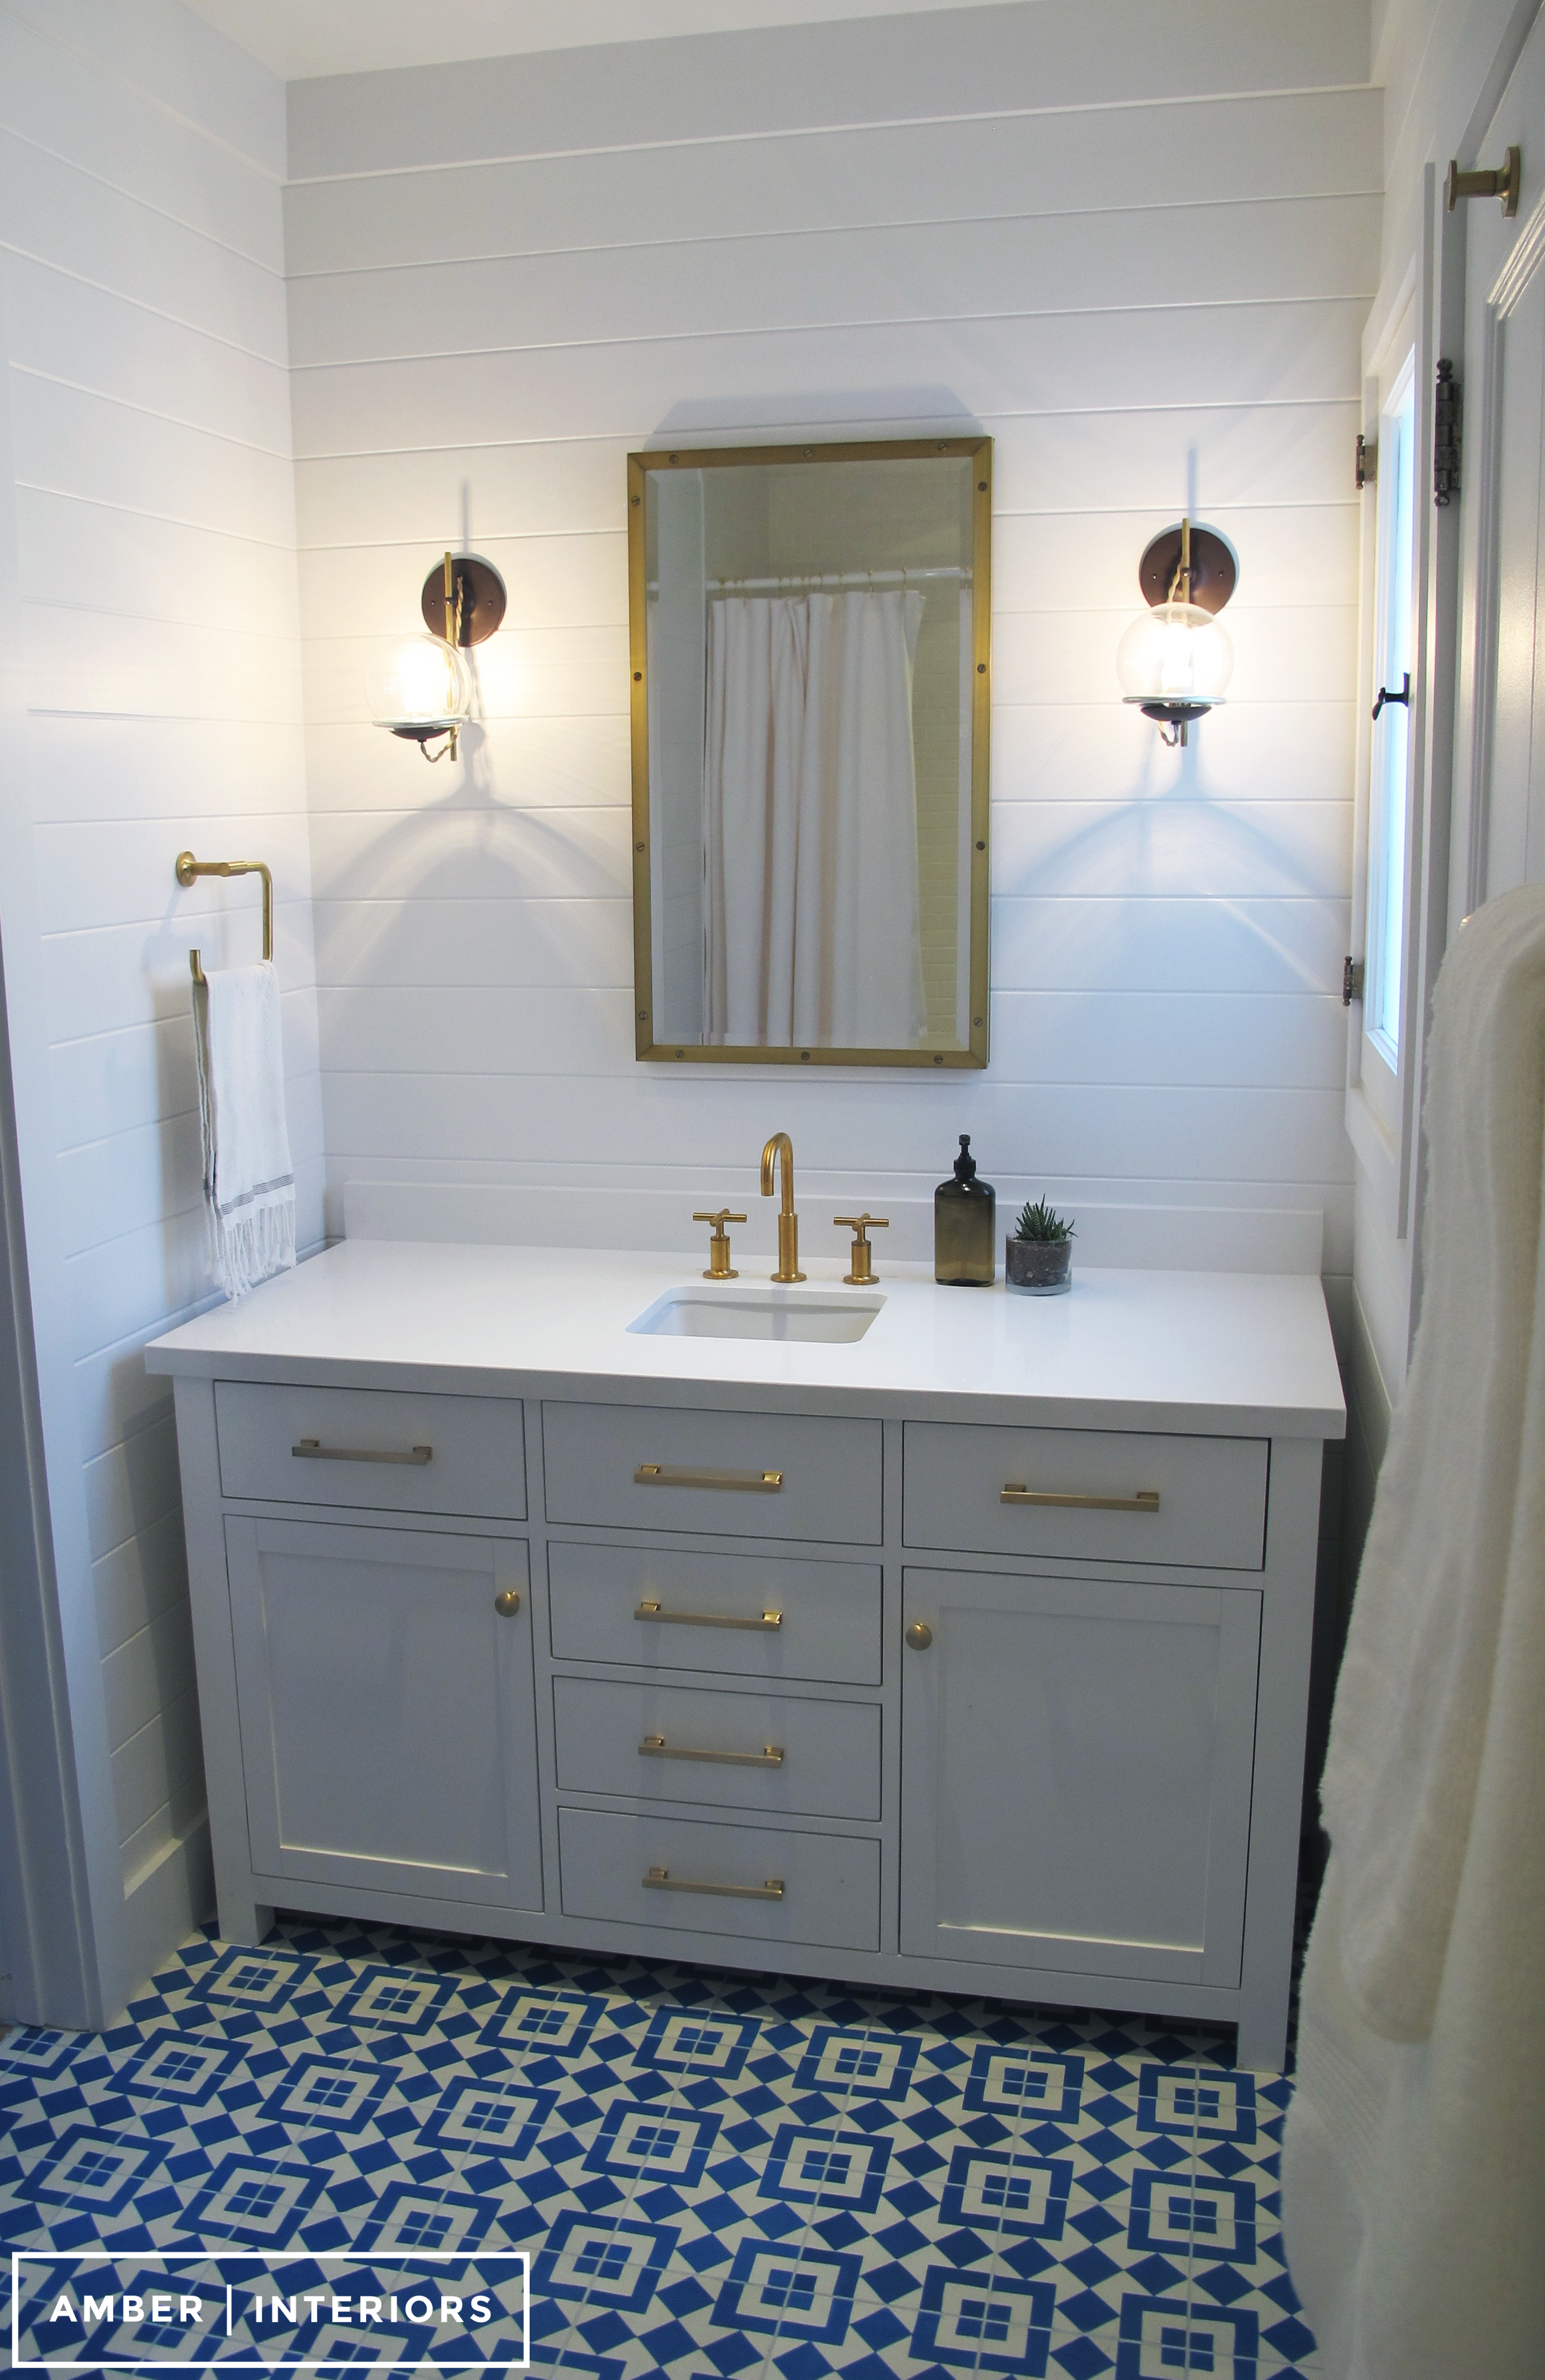 : Before & After : Guest Bathroom Remodel – Amber Interiors